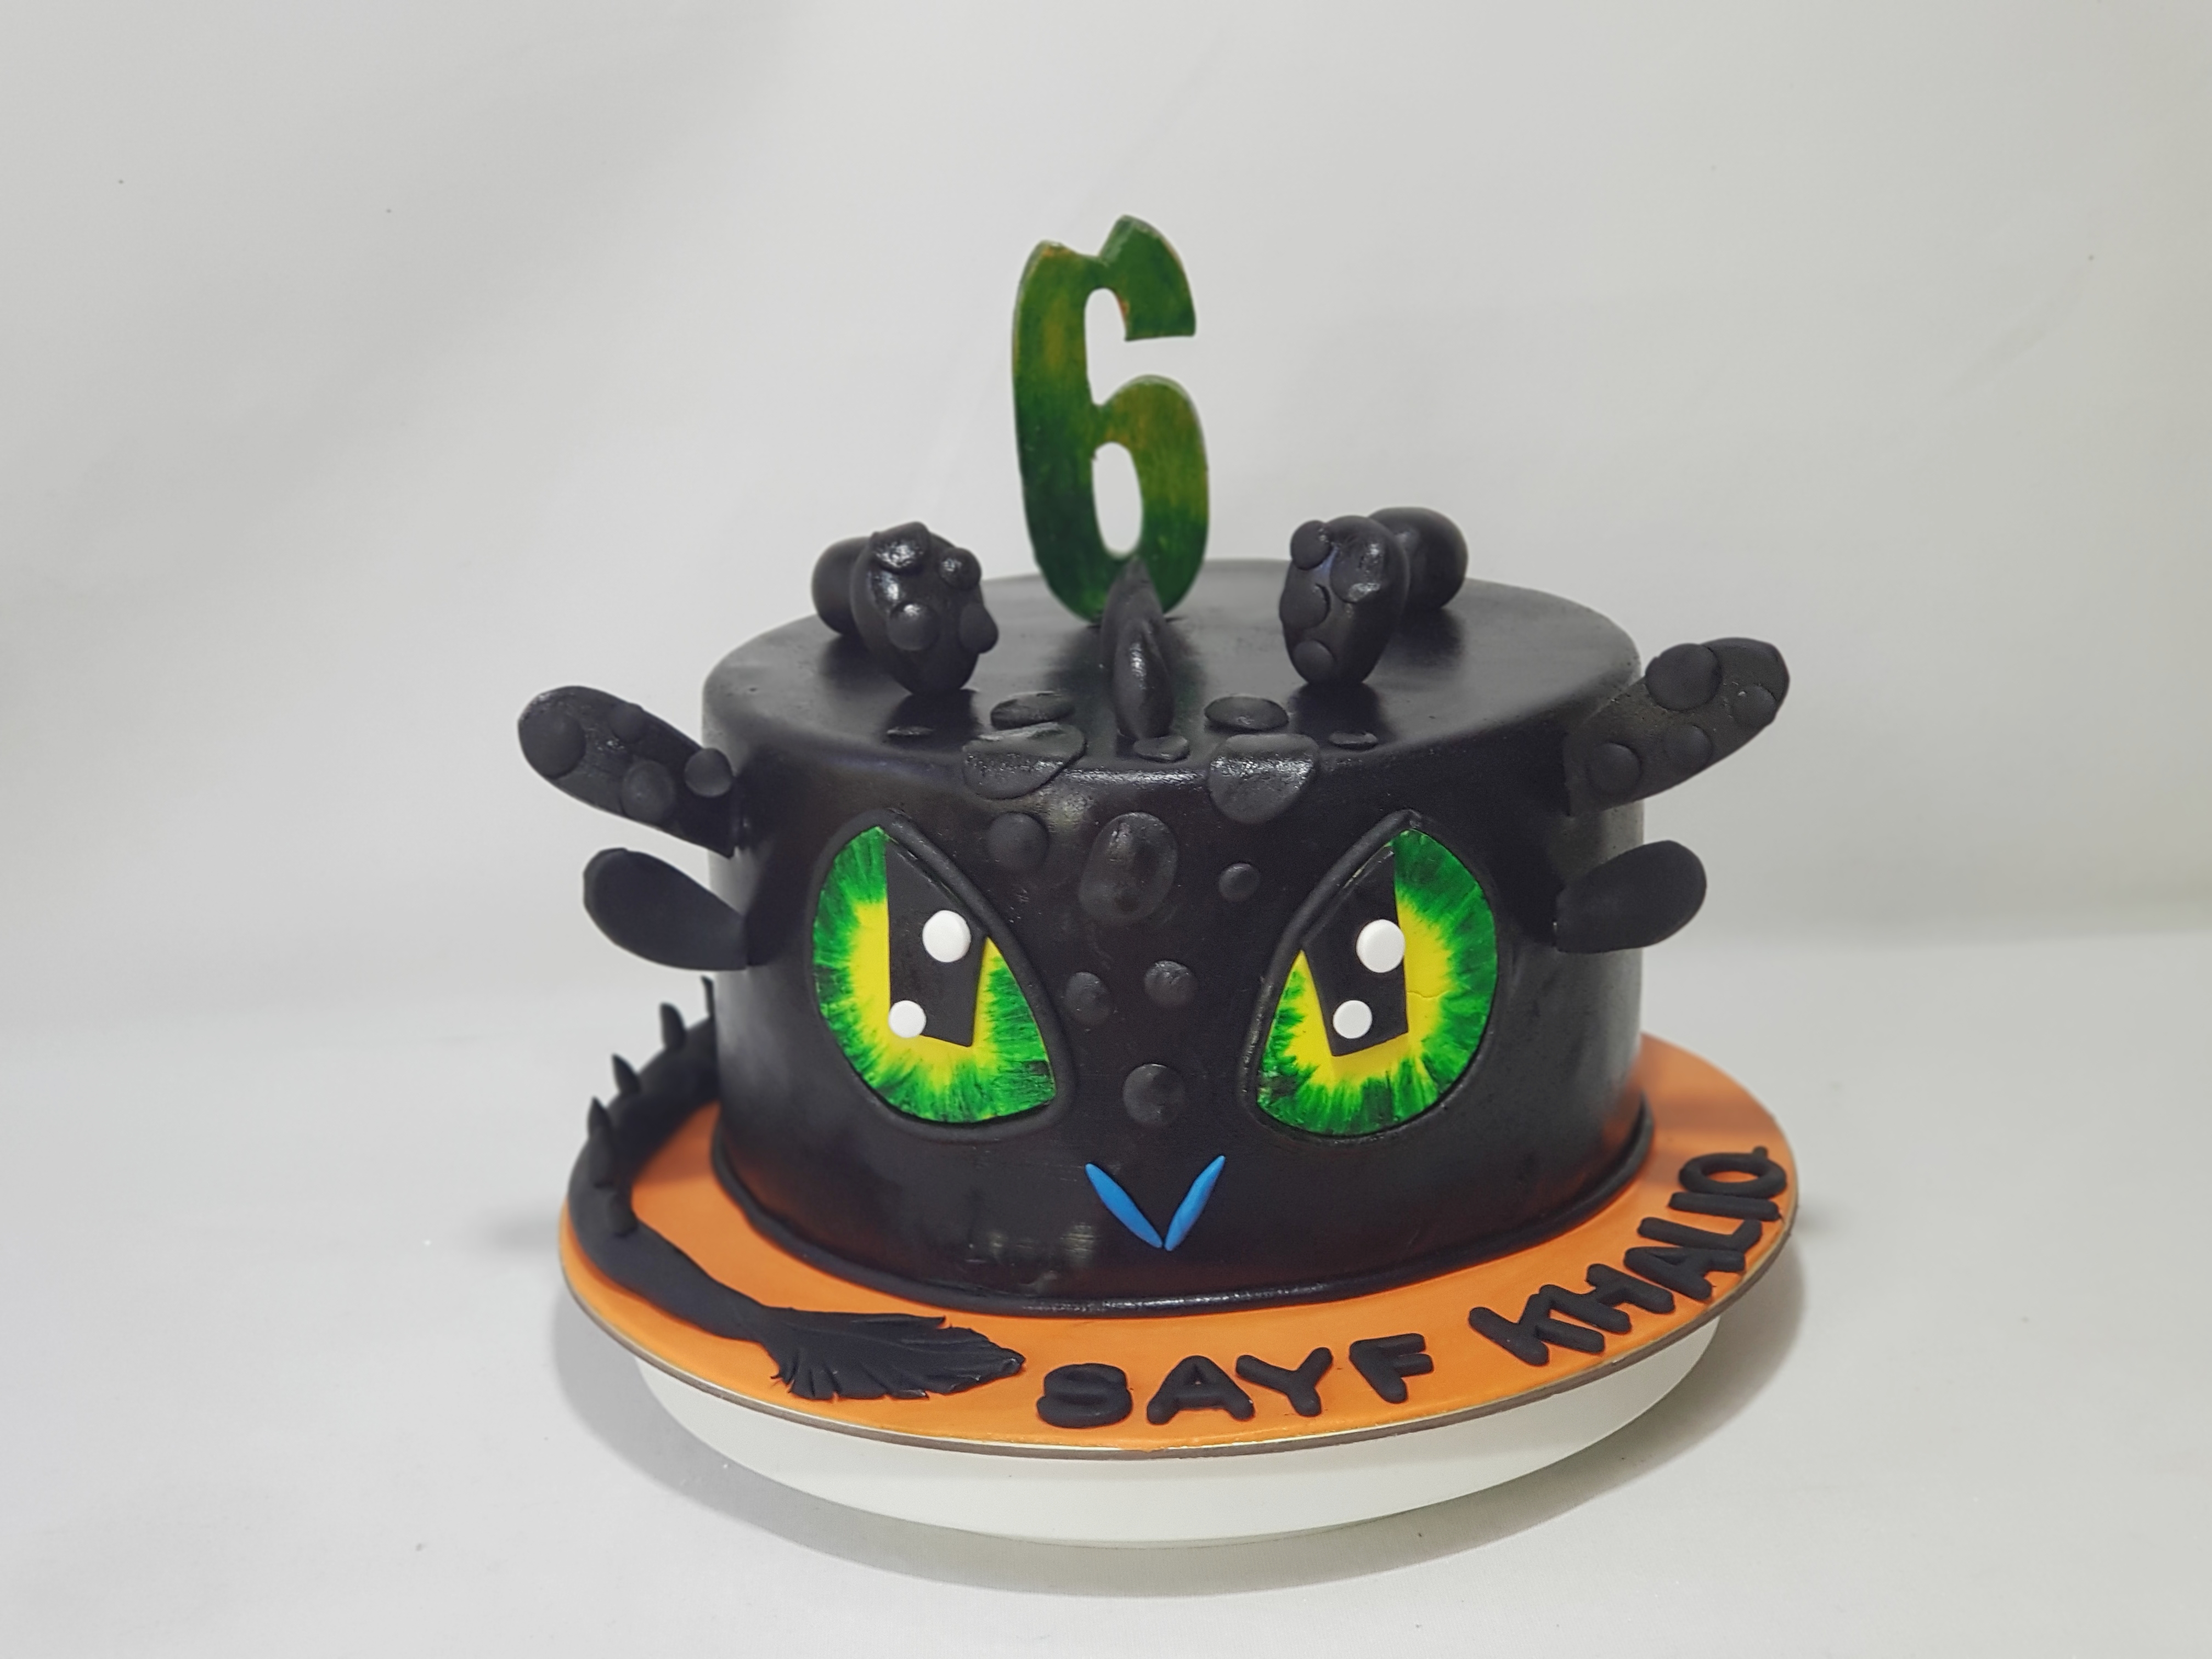 Swell How To Train Your Dragon Birthday Cake Sooperlicious Cakes Personalised Birthday Cards Veneteletsinfo